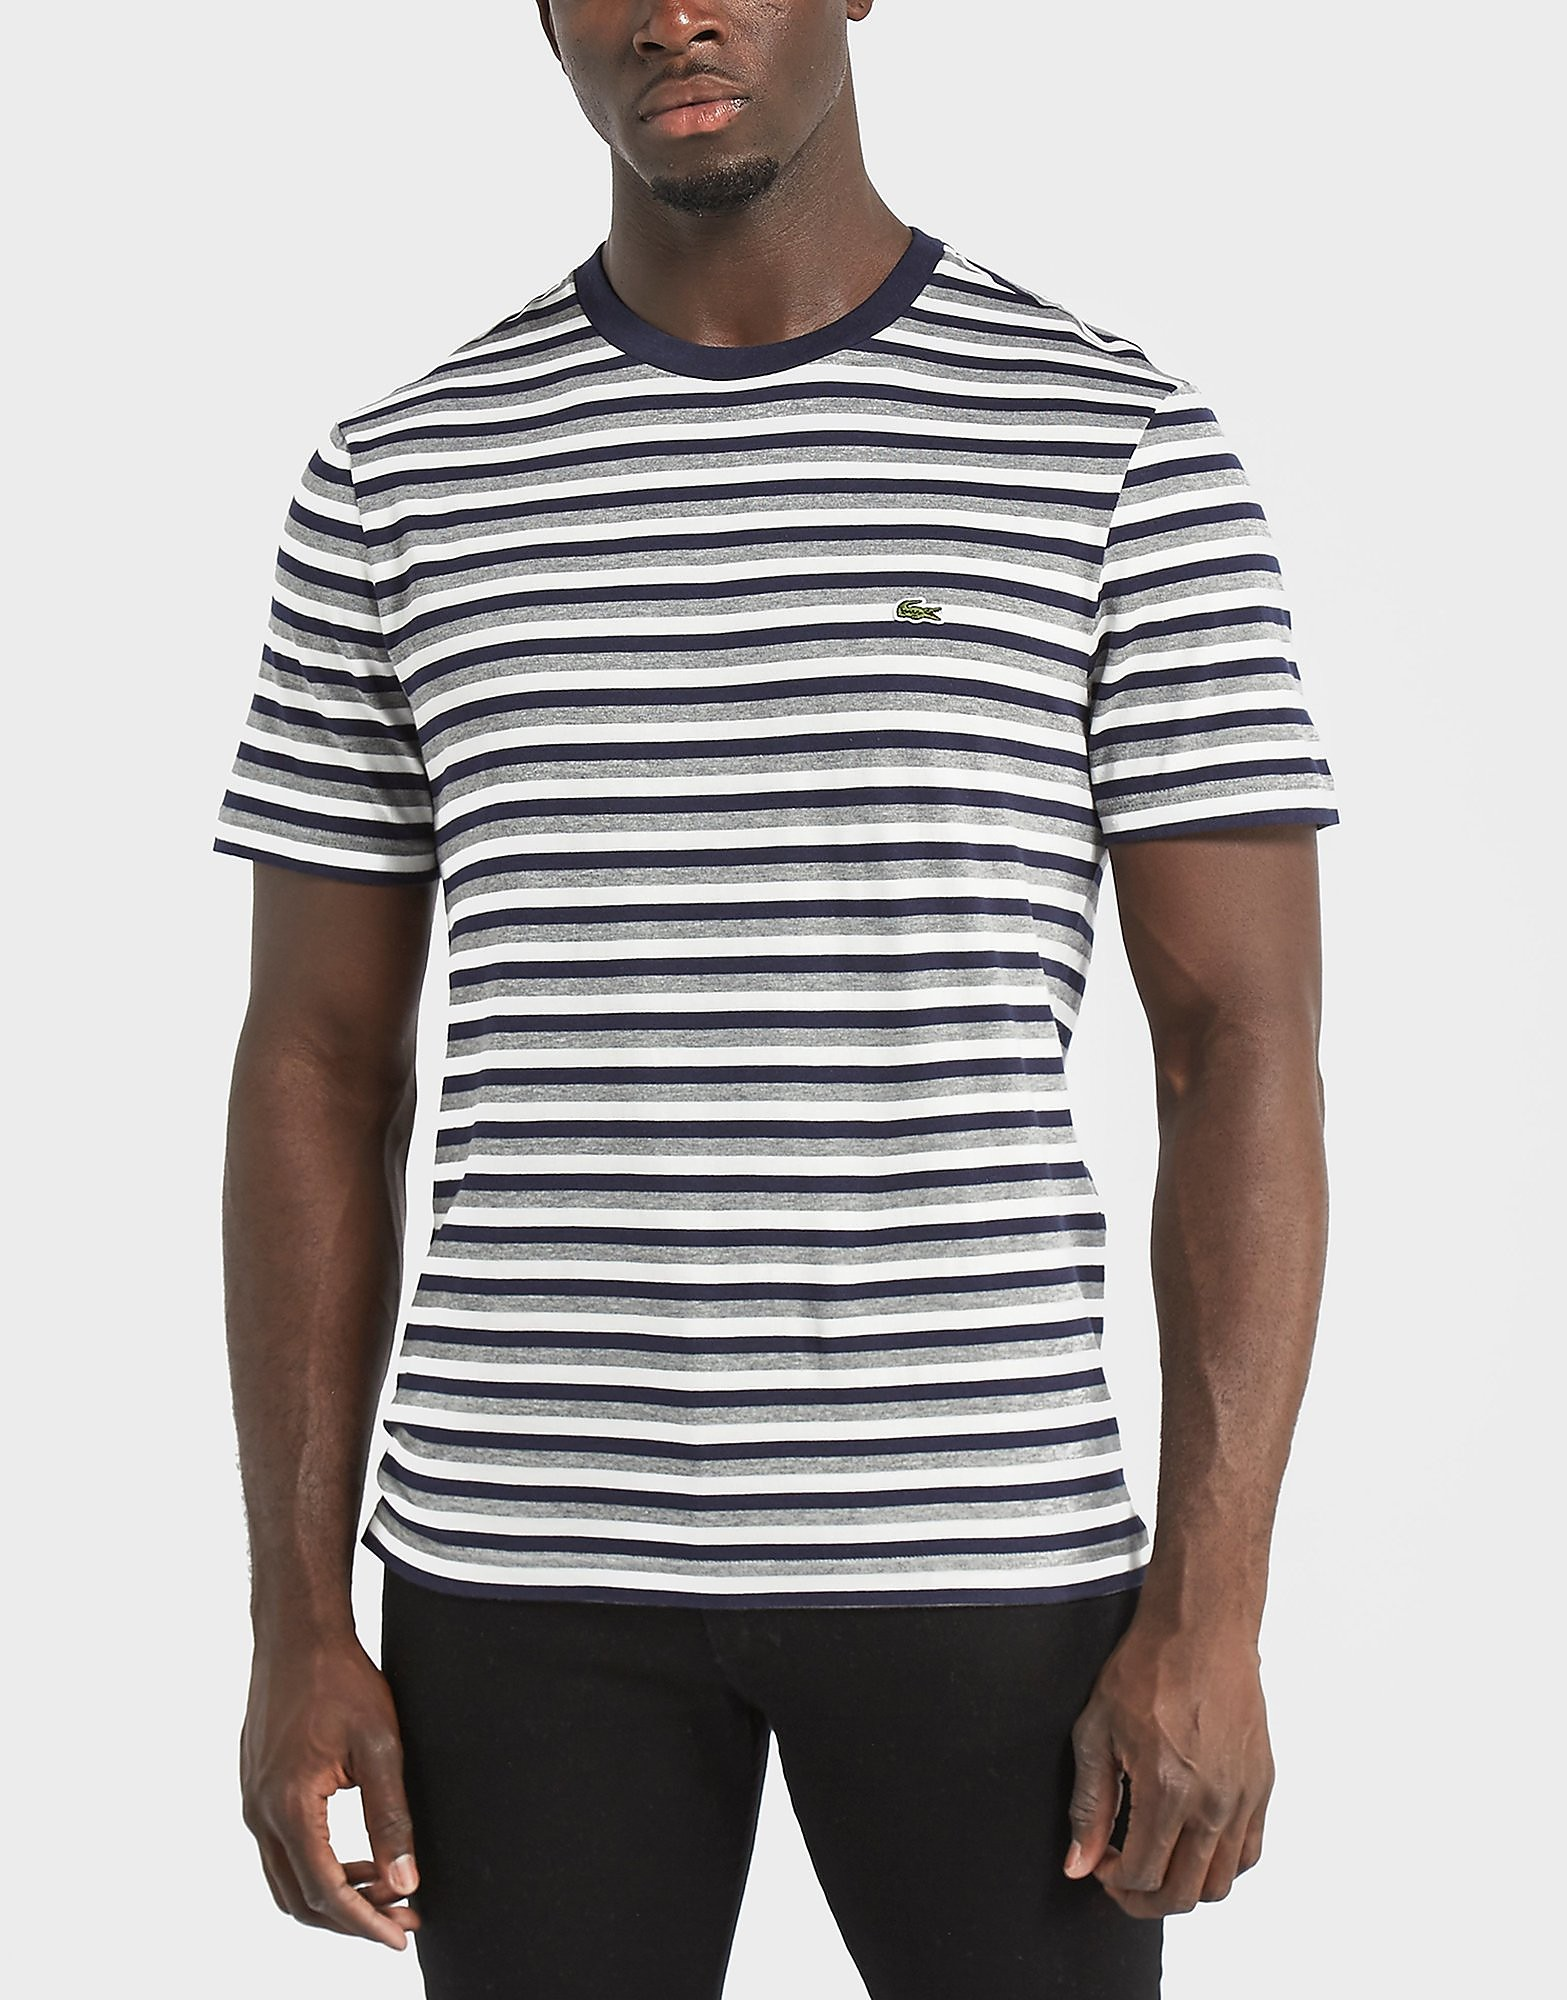 Lacoste Striped Short Sleeve Crew Neck T-Shirt